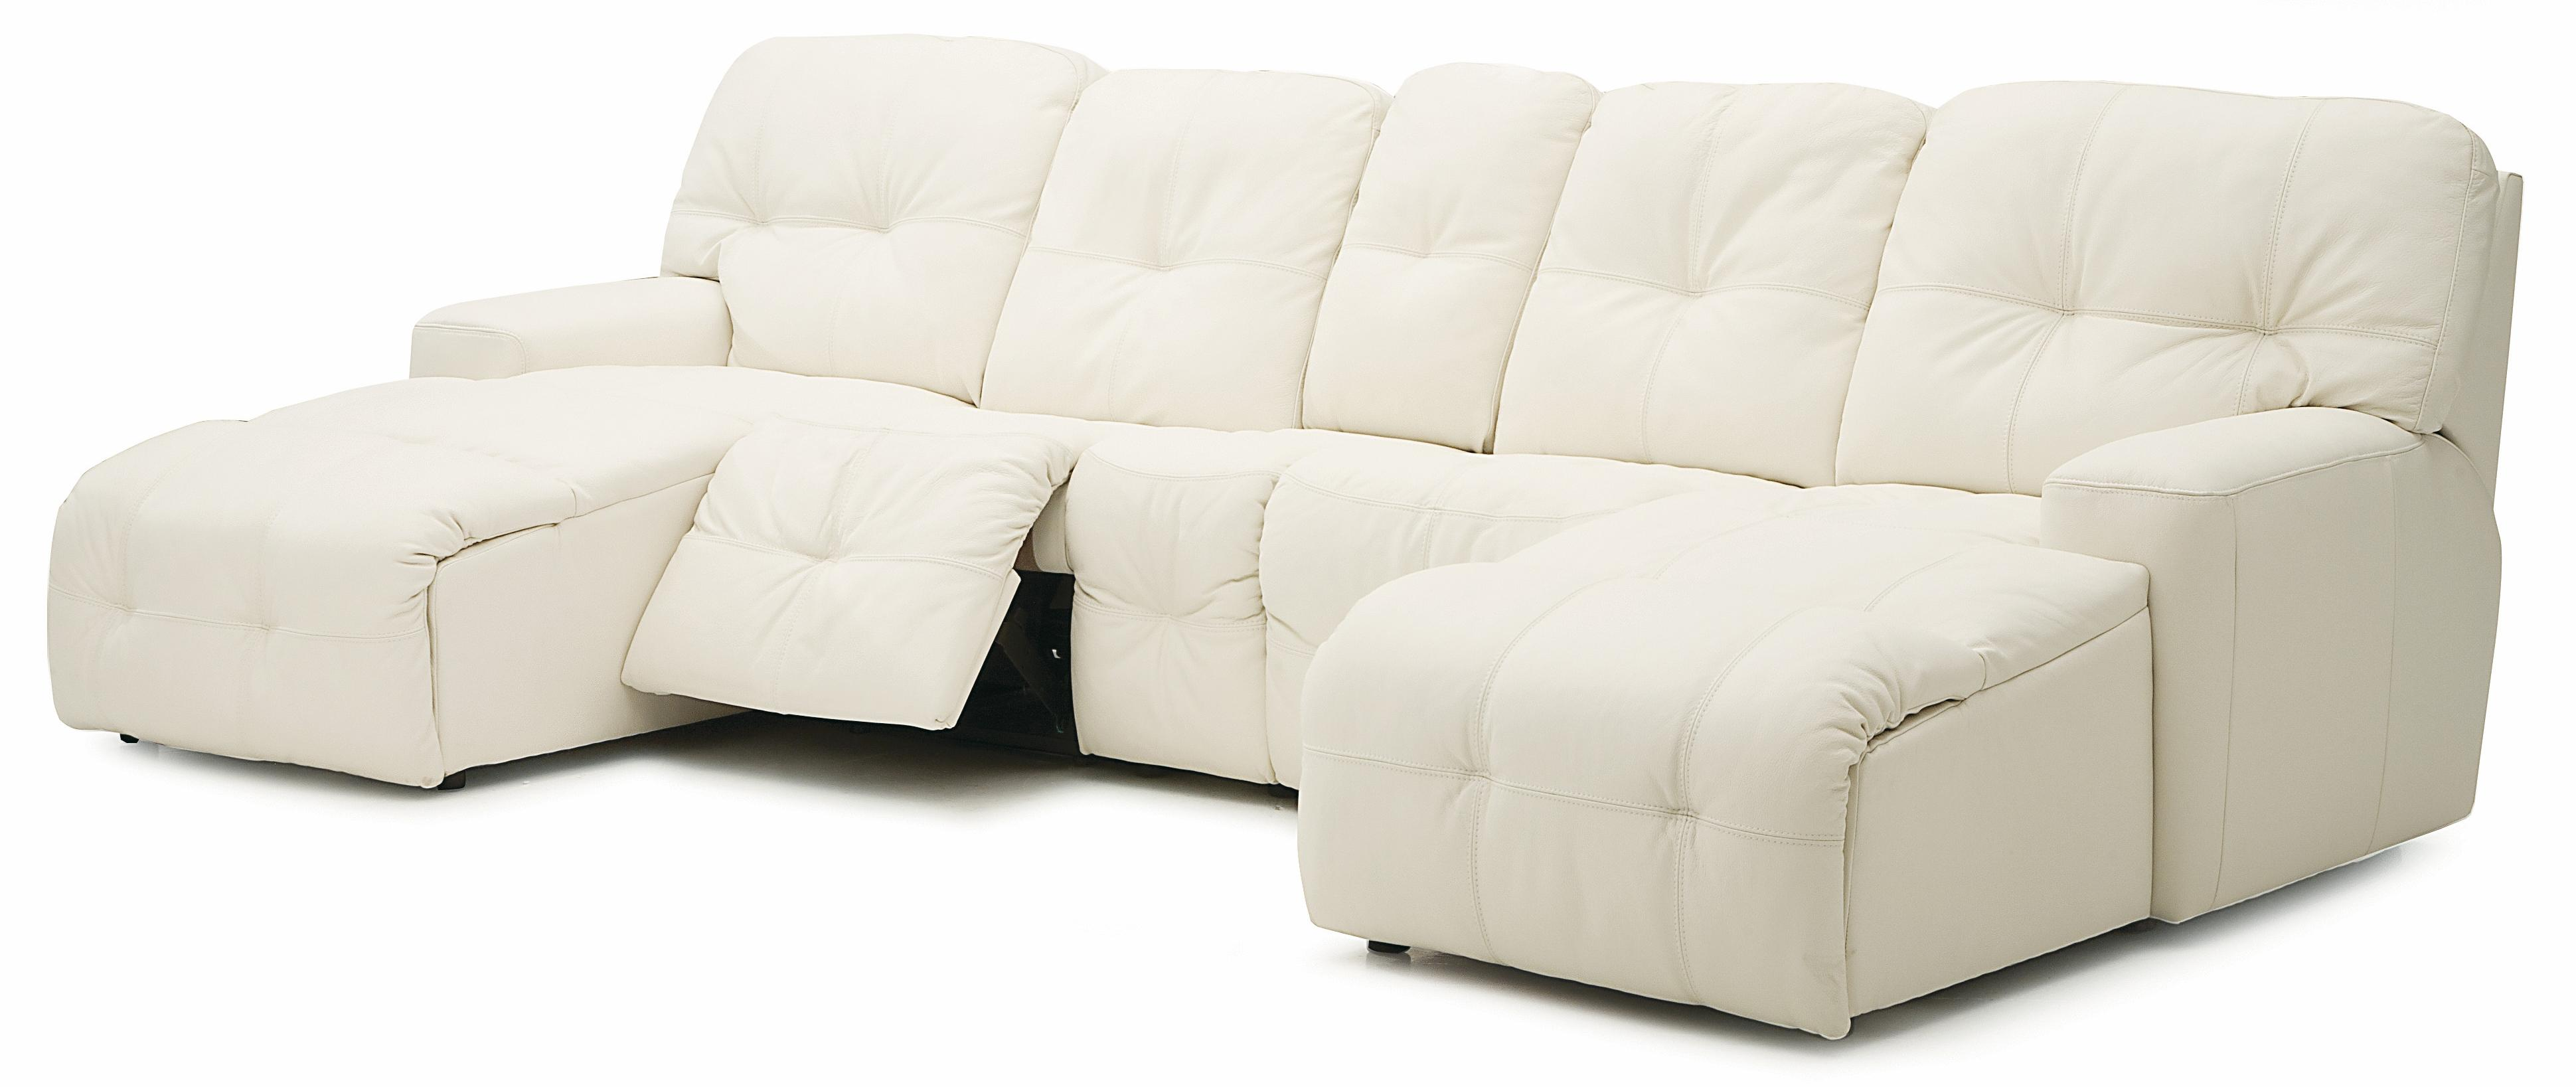 palliser mystique power reclining sectional with left and right chaise ahfa reclining sectional sofa dealer locator